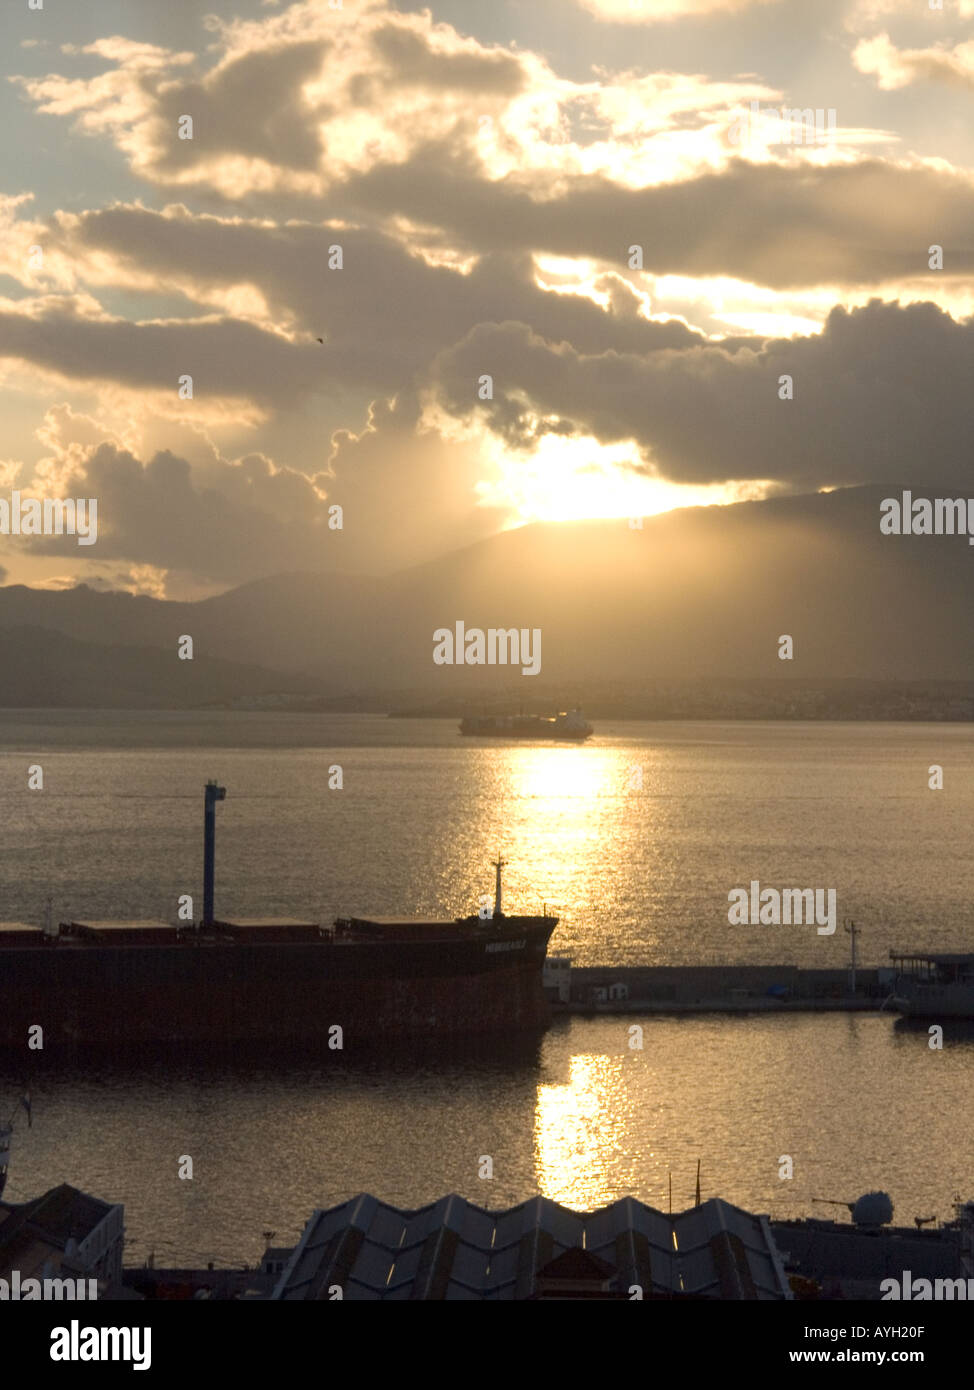 Dusk over the Bay of Gibraltar, Europe, with ships and tankers, - Stock Image